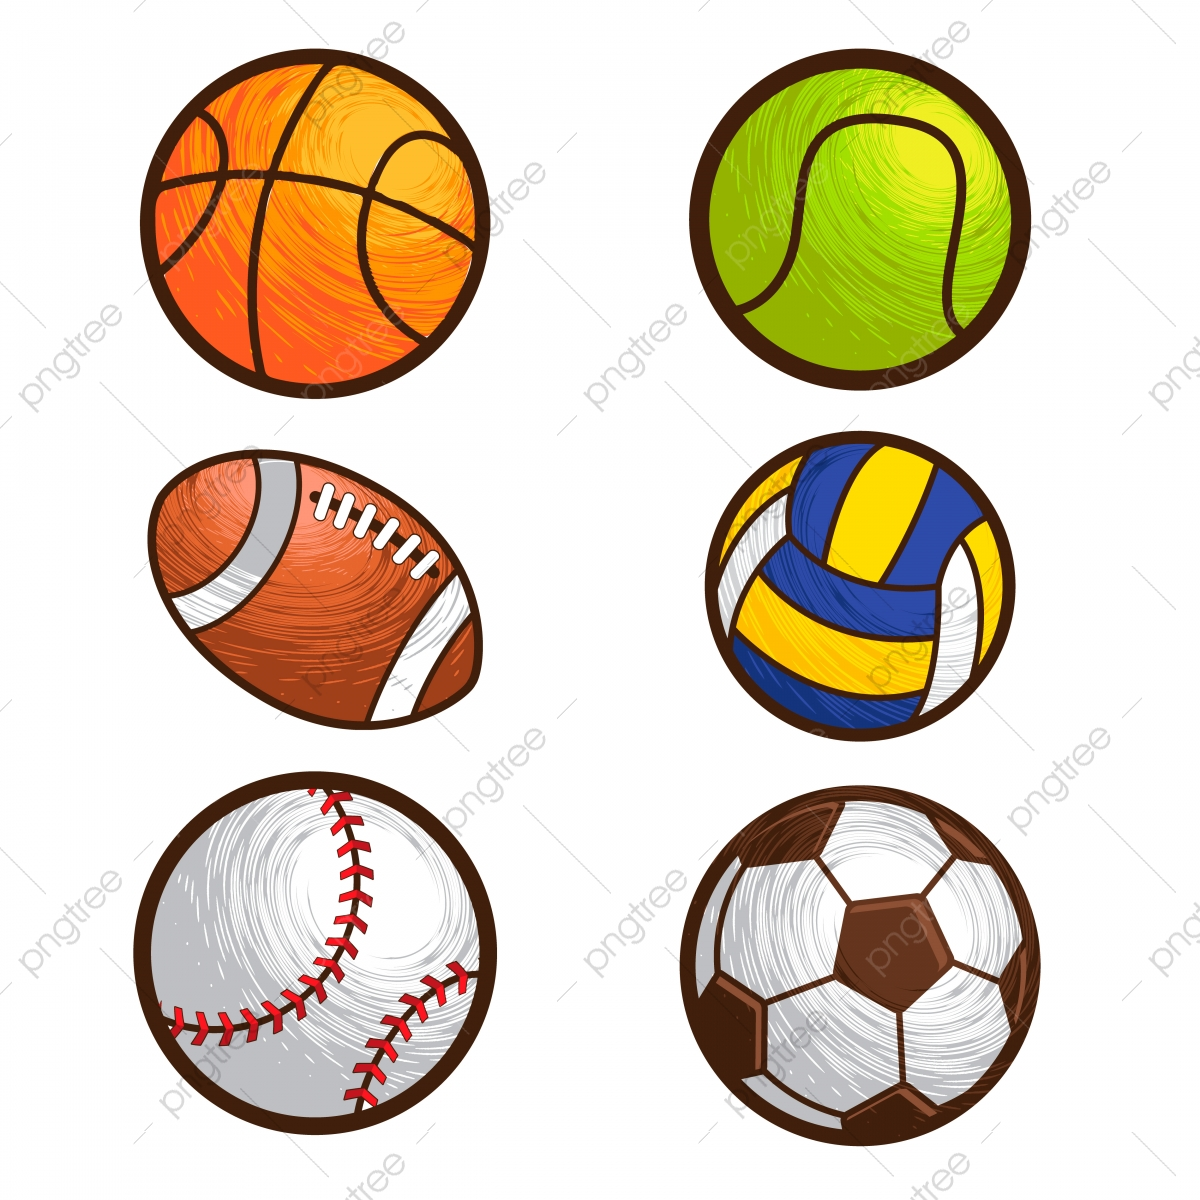 Sport Ball Vector Illustration Set Handball Baseball Tennis Png And Vector With Transparent Background For Free Download